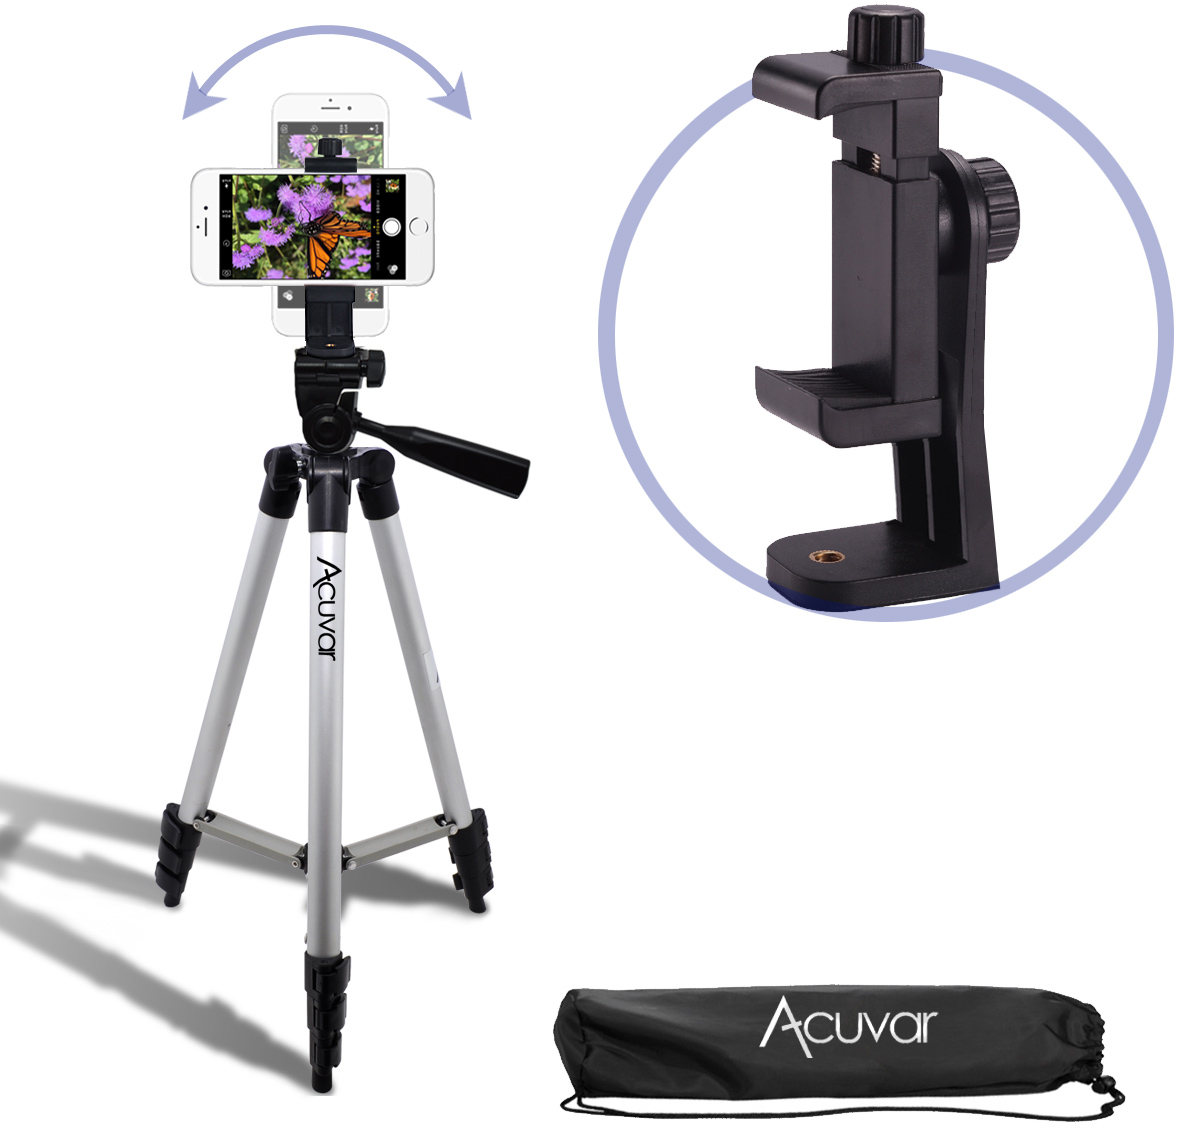 """Acuvar 50"""" Smartphone/Camera Tripod with Rotating Mount. Fits iPhone  Xs, Xs Max, Xr, X, 8, 8+, 7, 7 Plus, 6, 6 Plus, 5s Samsung Galaxy, Android, etc."""